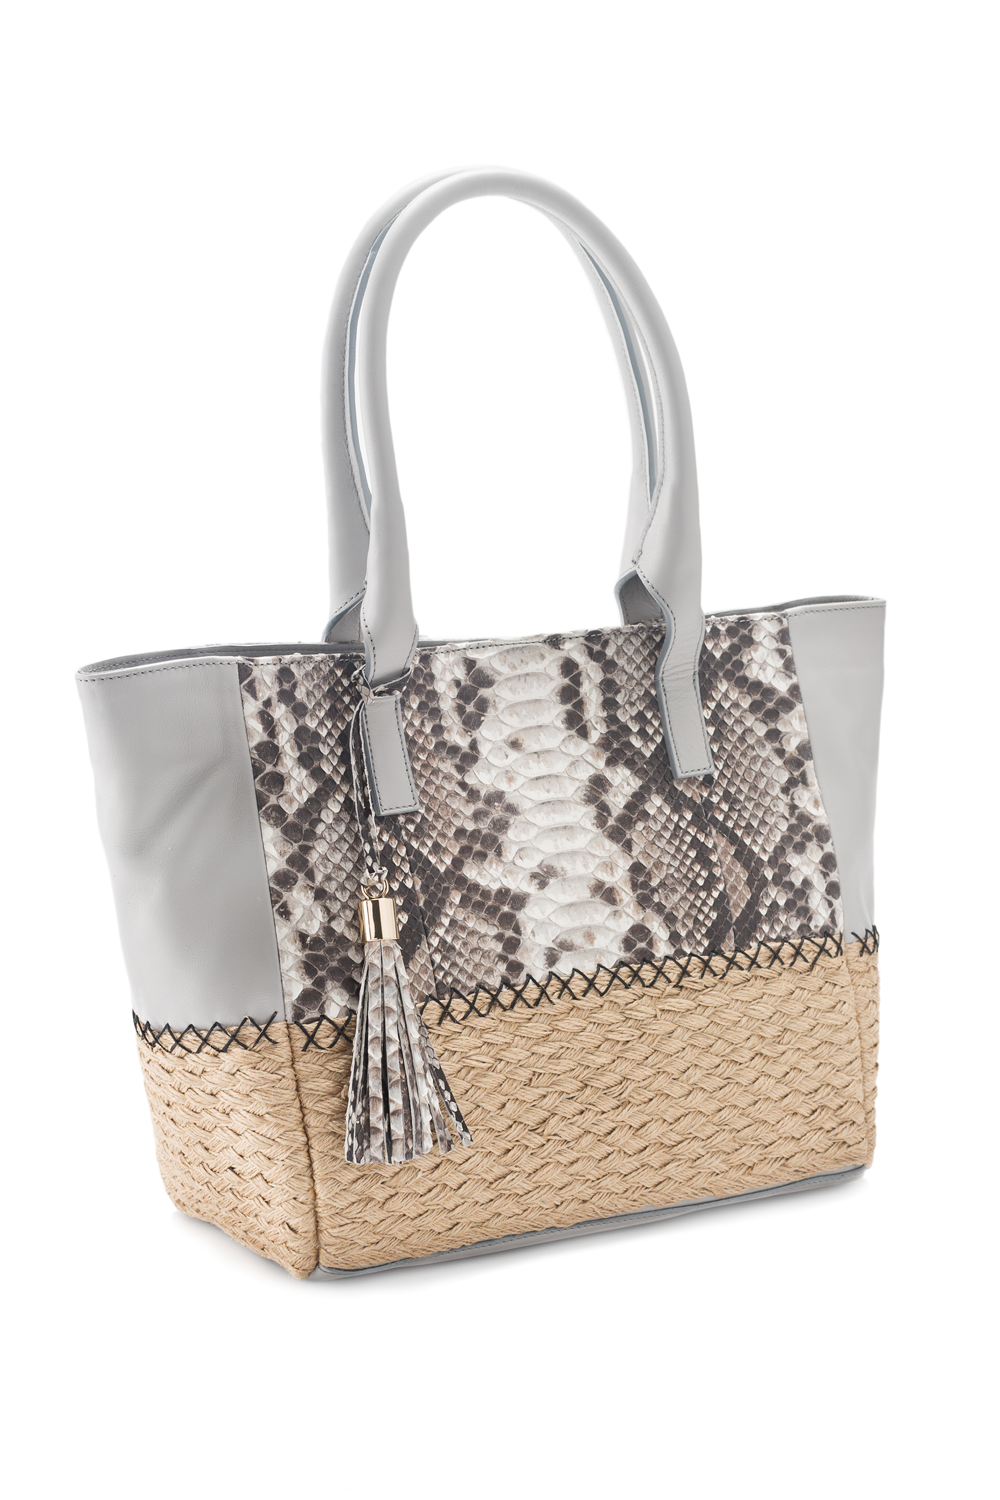 Mel Boteri | Harbor Grey Python Leather & Espadrille 'Ellis Mini' Tote | Side View